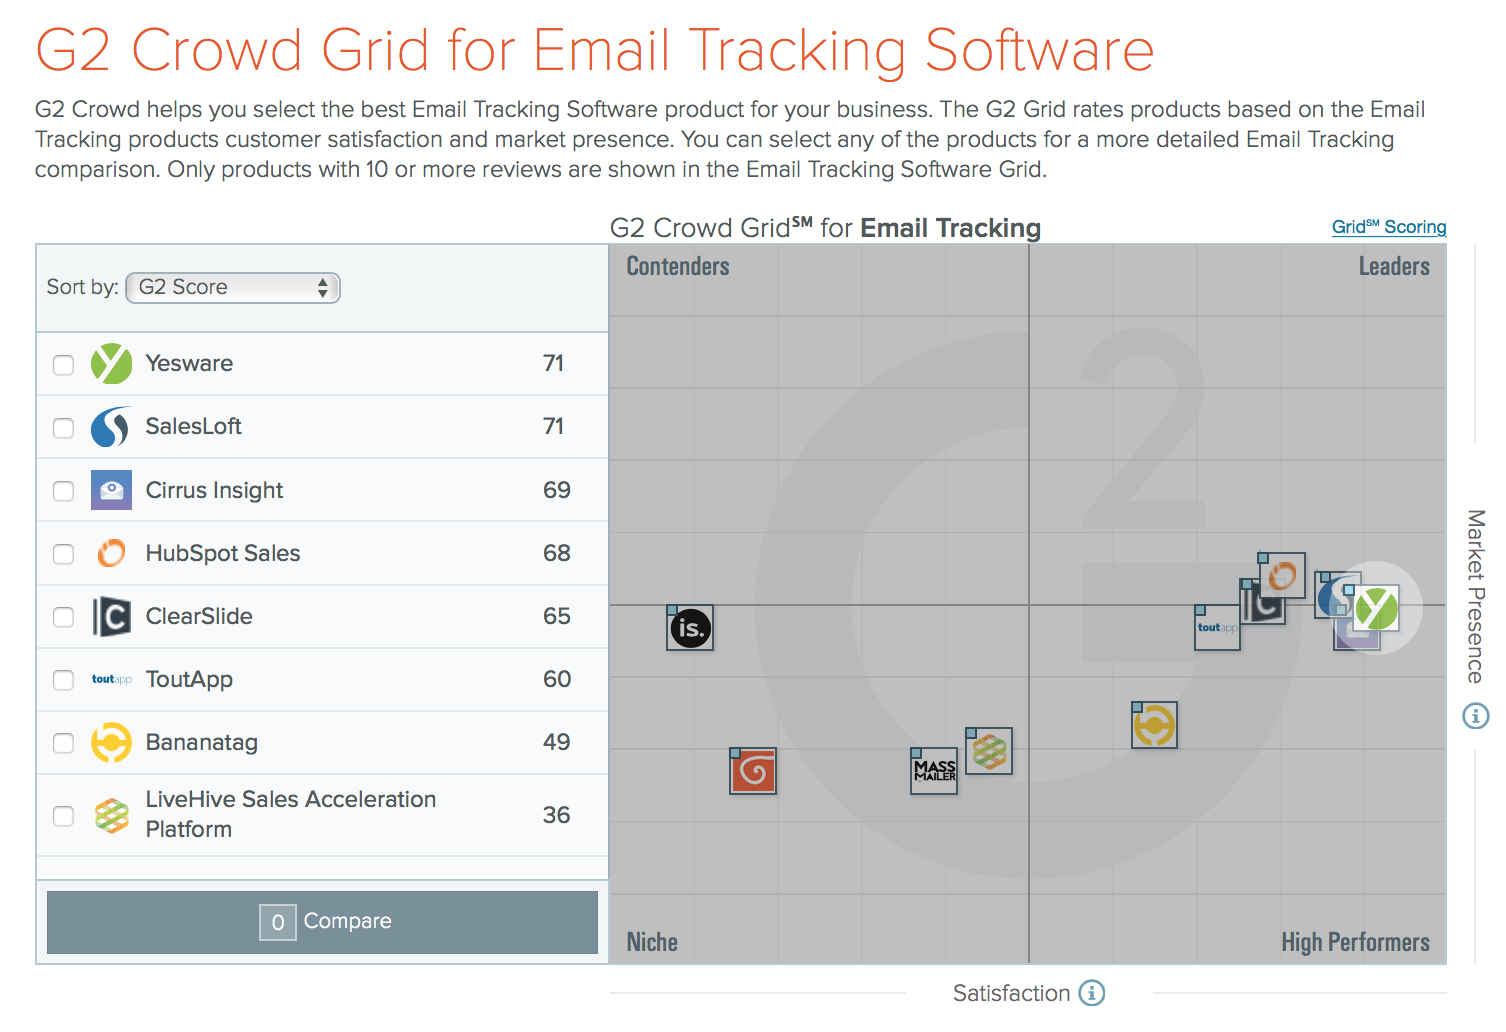 G2Crowd Fall 2016 Leader Email Tracking